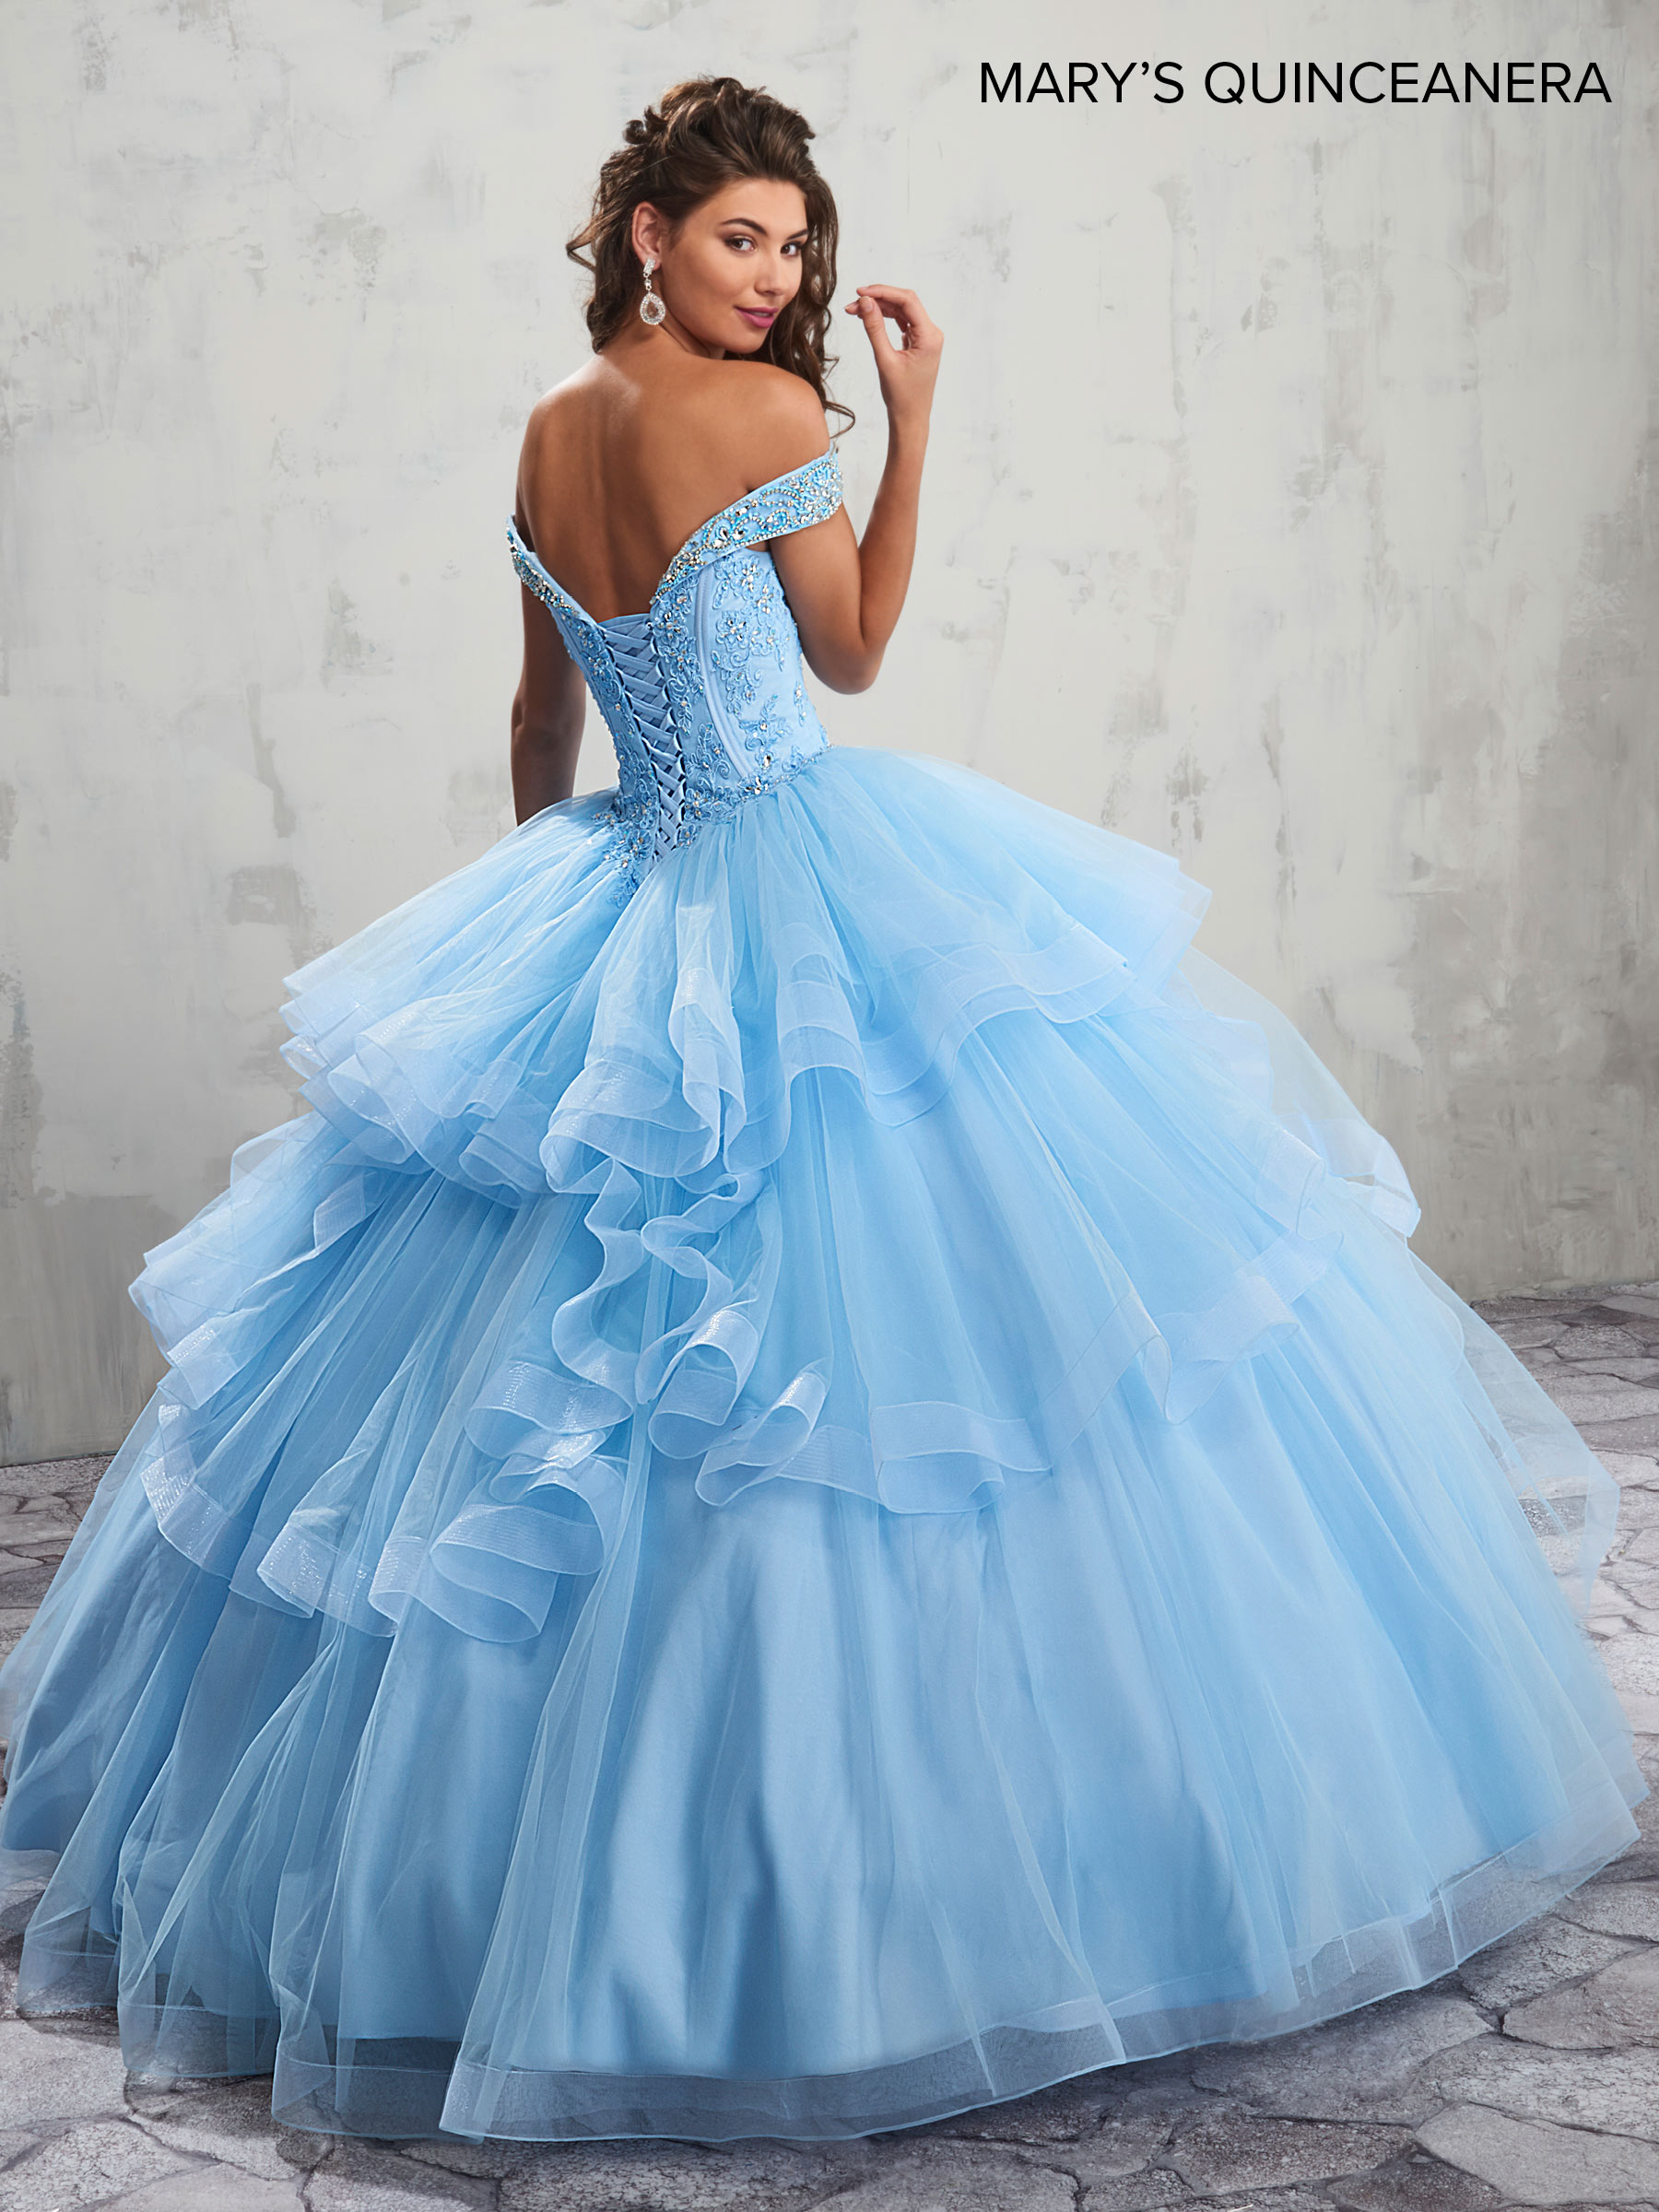 Marys Quinceanera Dresses | Mary's Quinceanera | Style - MQ2002